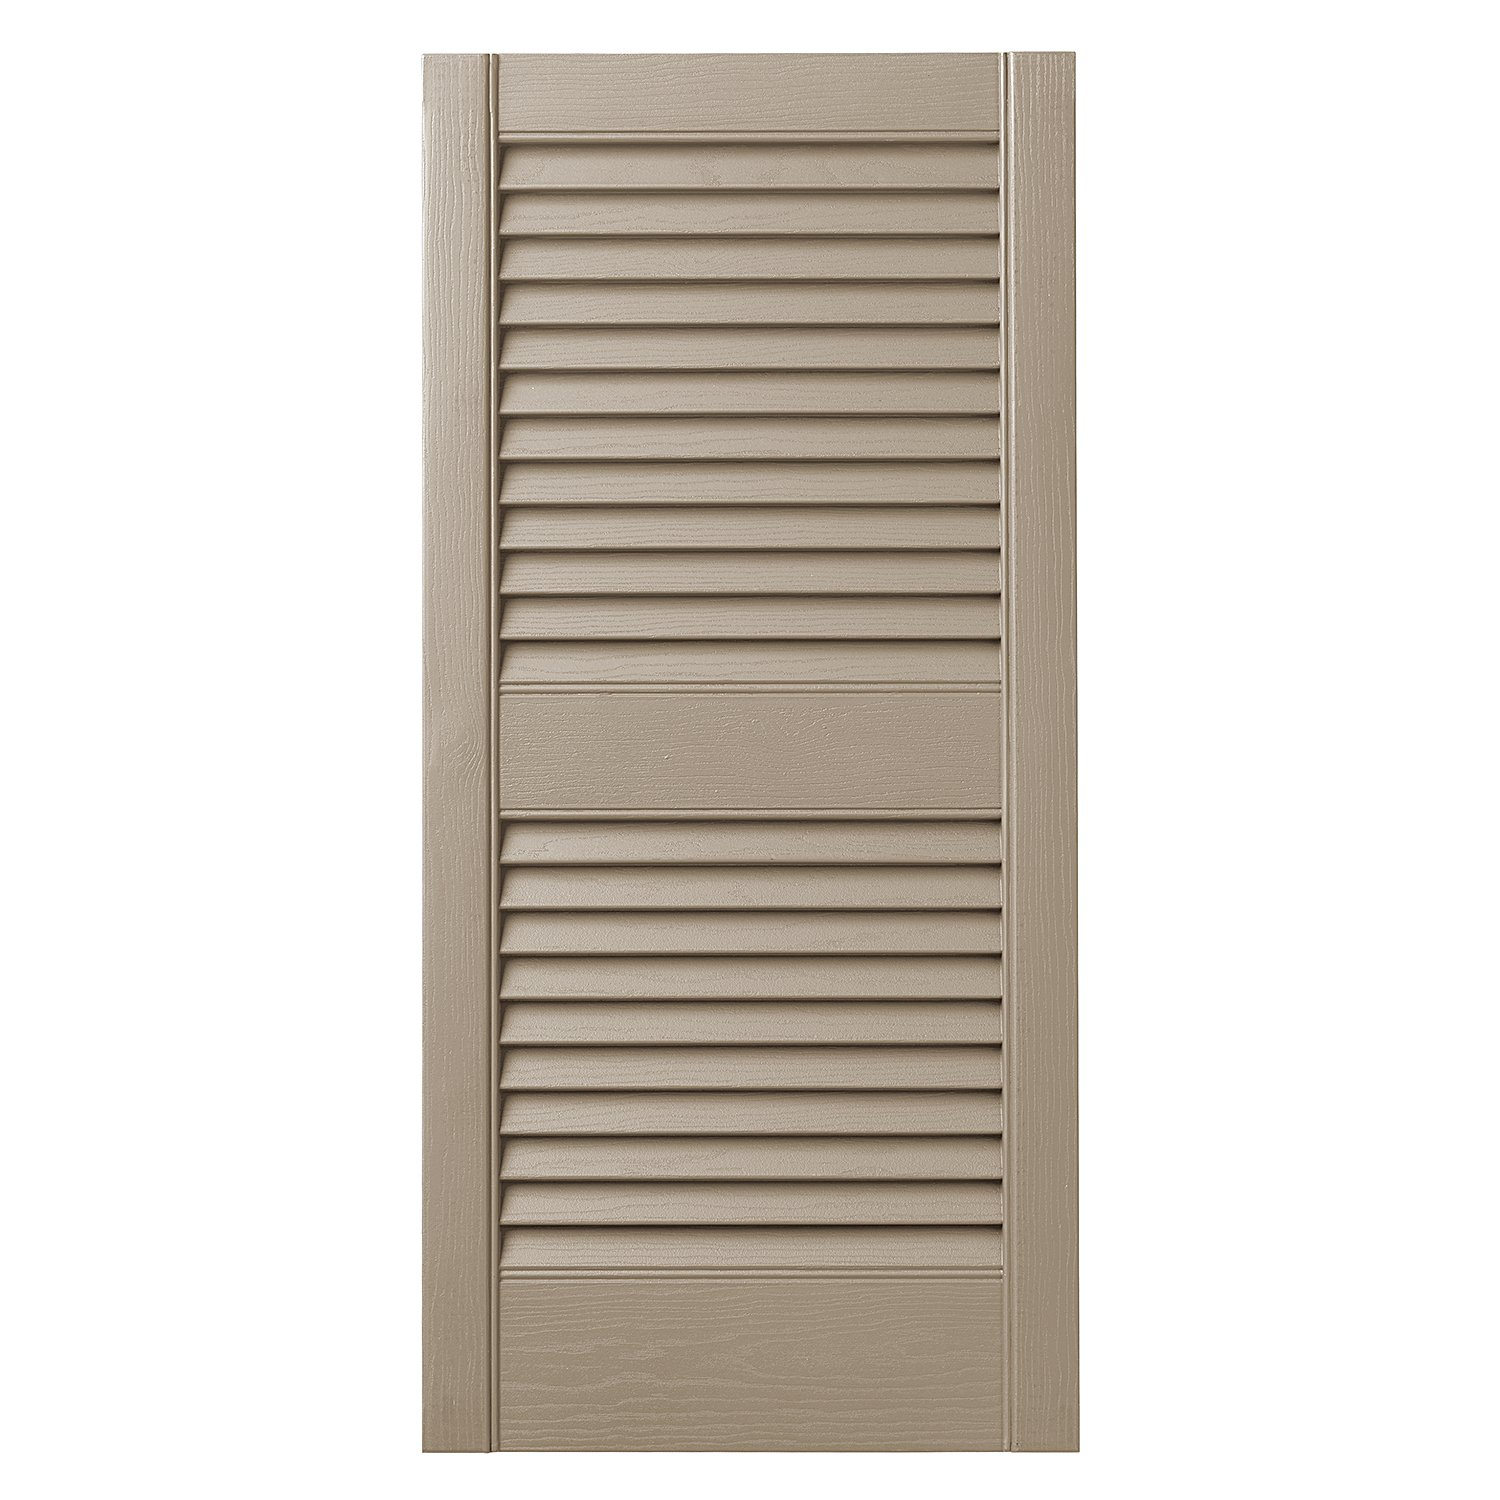 Ply Gem Shutters and Accents VINLV1525 52 Louvered